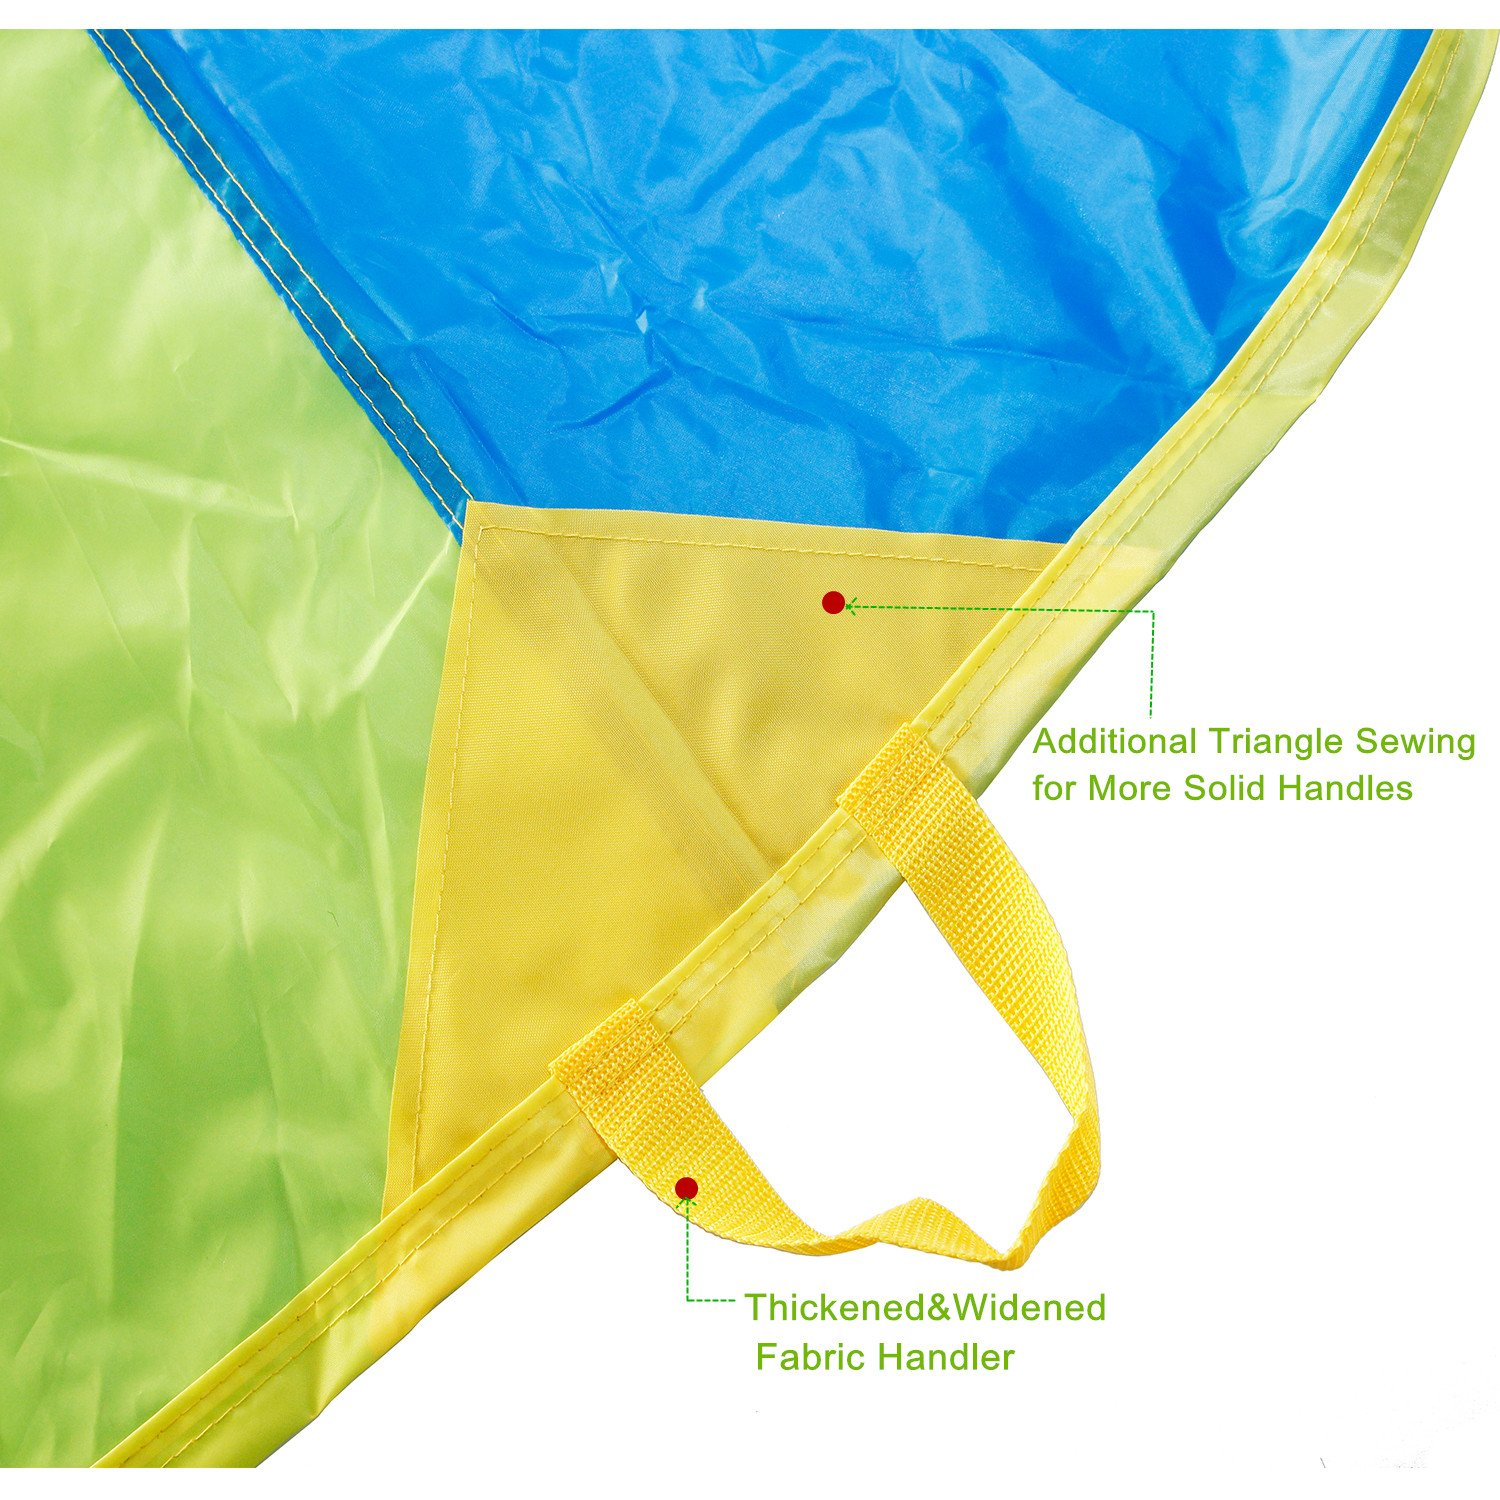 Sonyabecca Parachute, Play Parachute 20ft with 16 Handles for Kids Cooperation Group Play by Sonyabecca (Image #4)